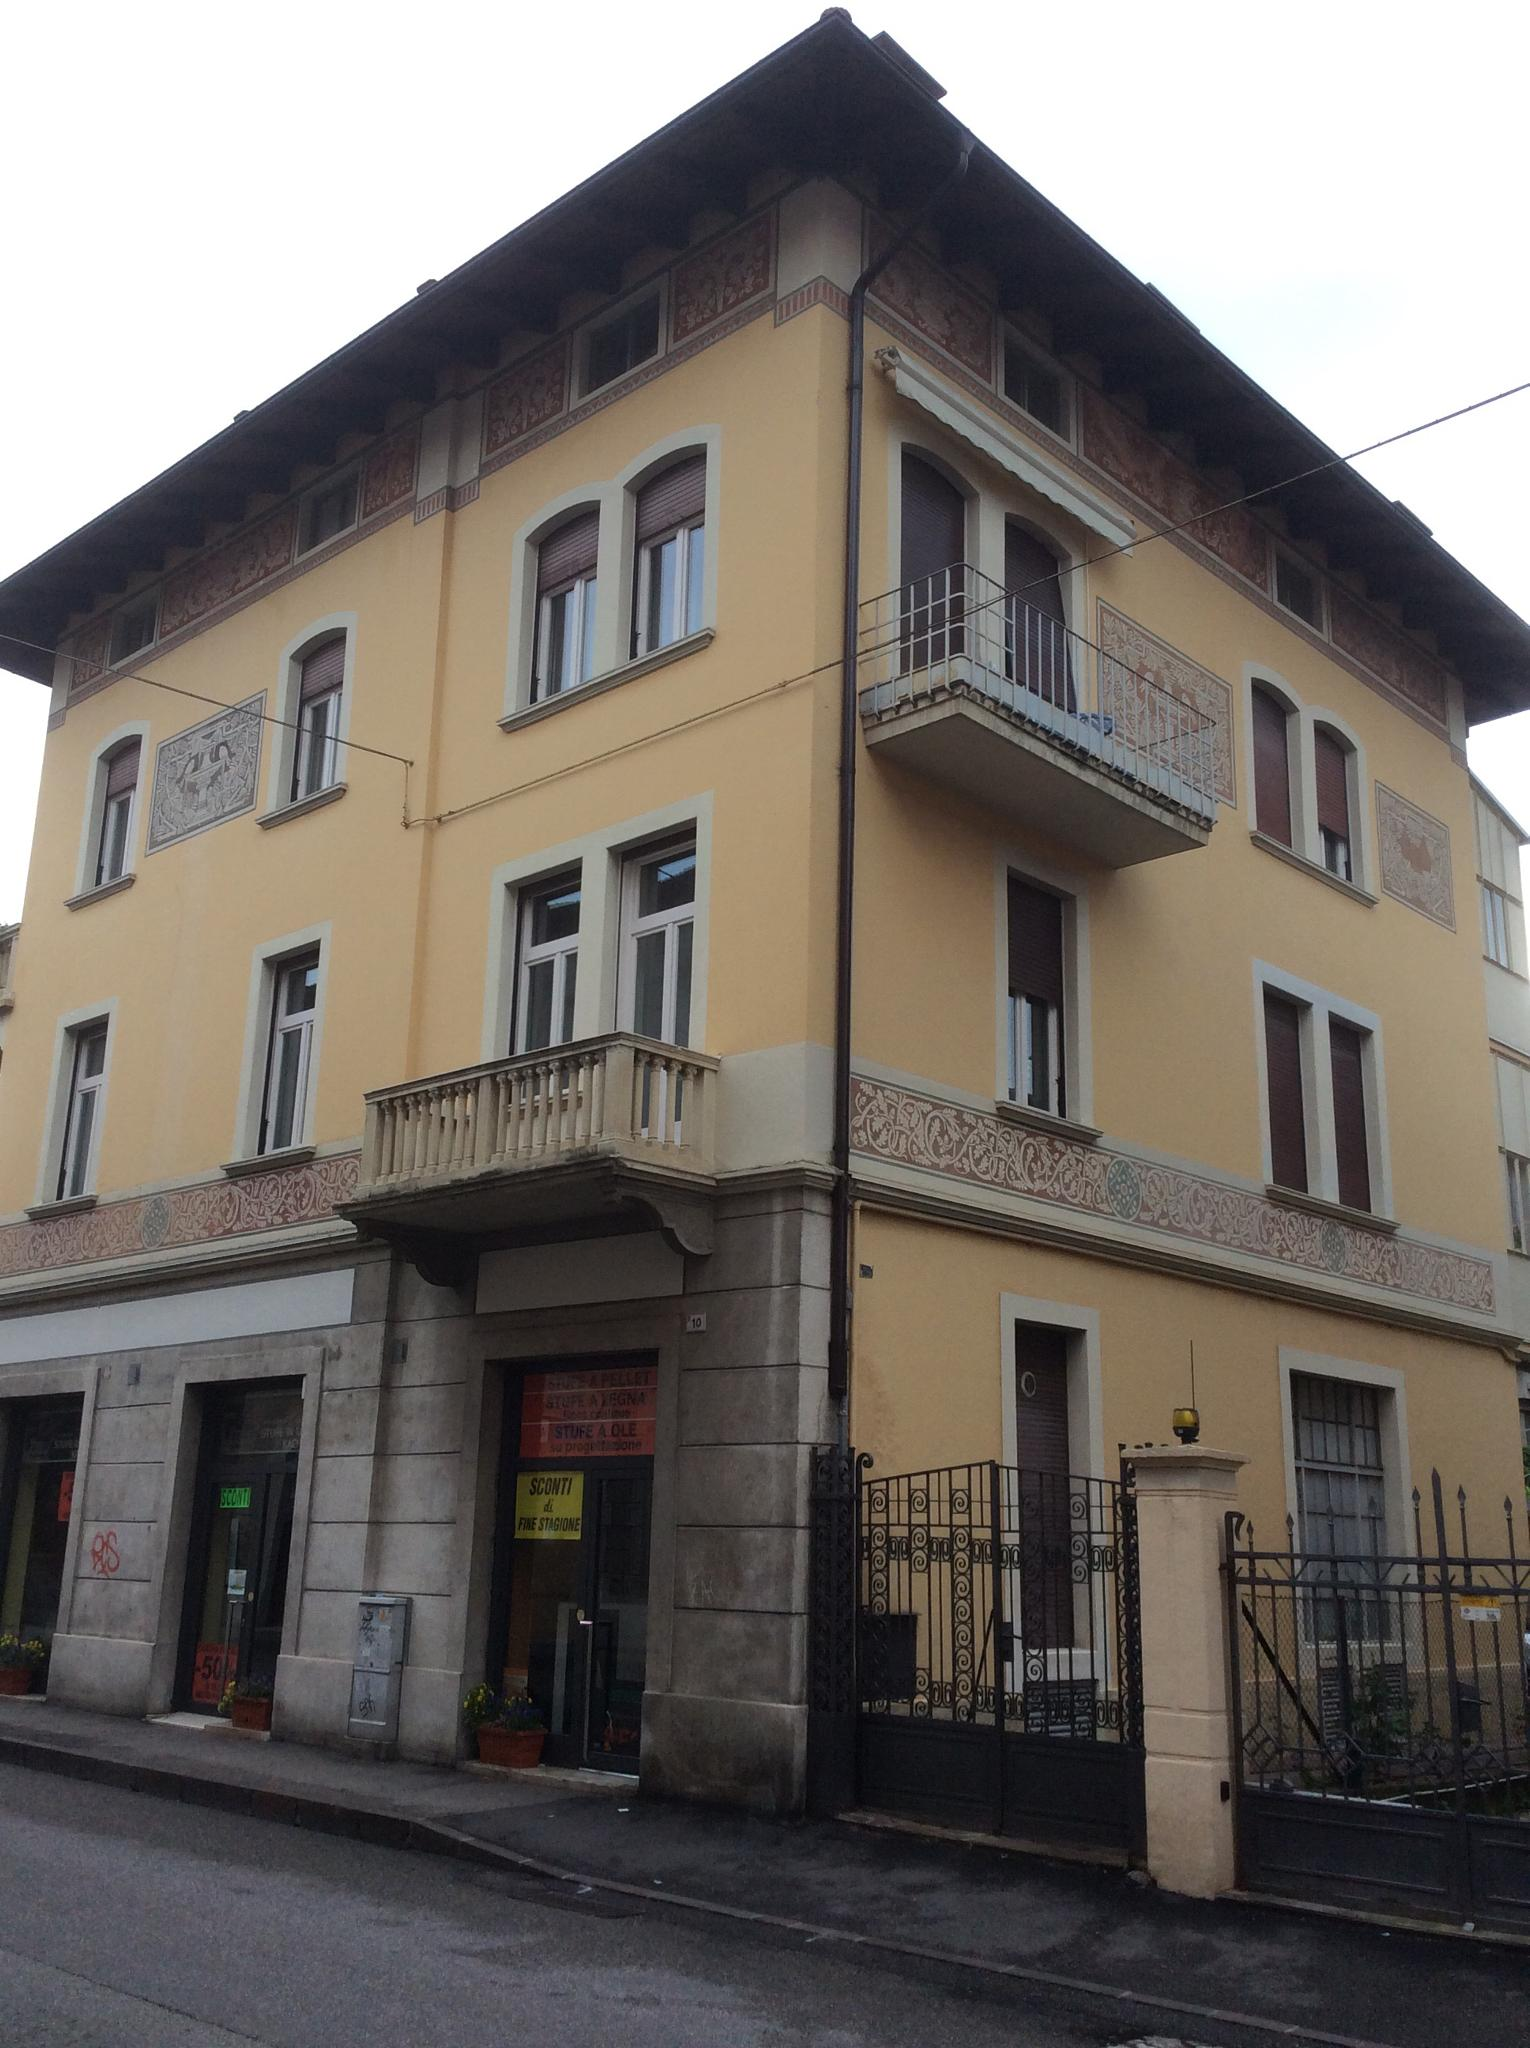 The building in Rovereto by johnny.kariono